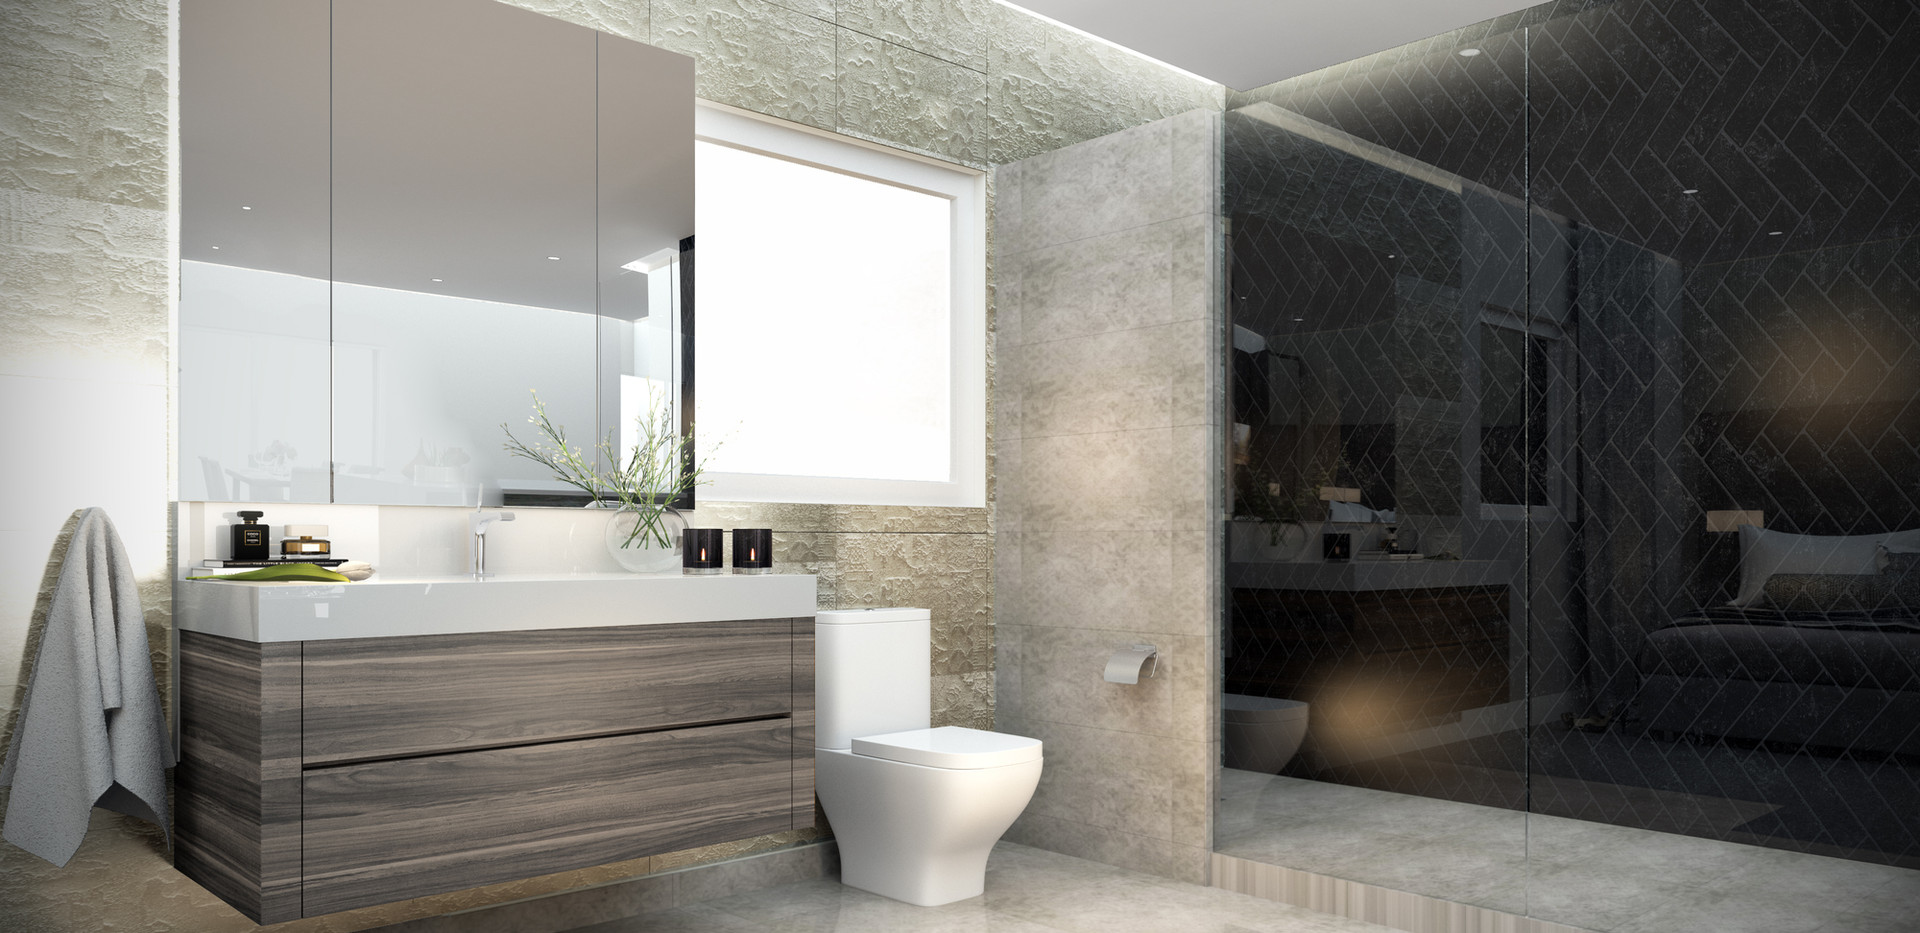 Eco1 Lodge Scheme 3 bathroom.jpg